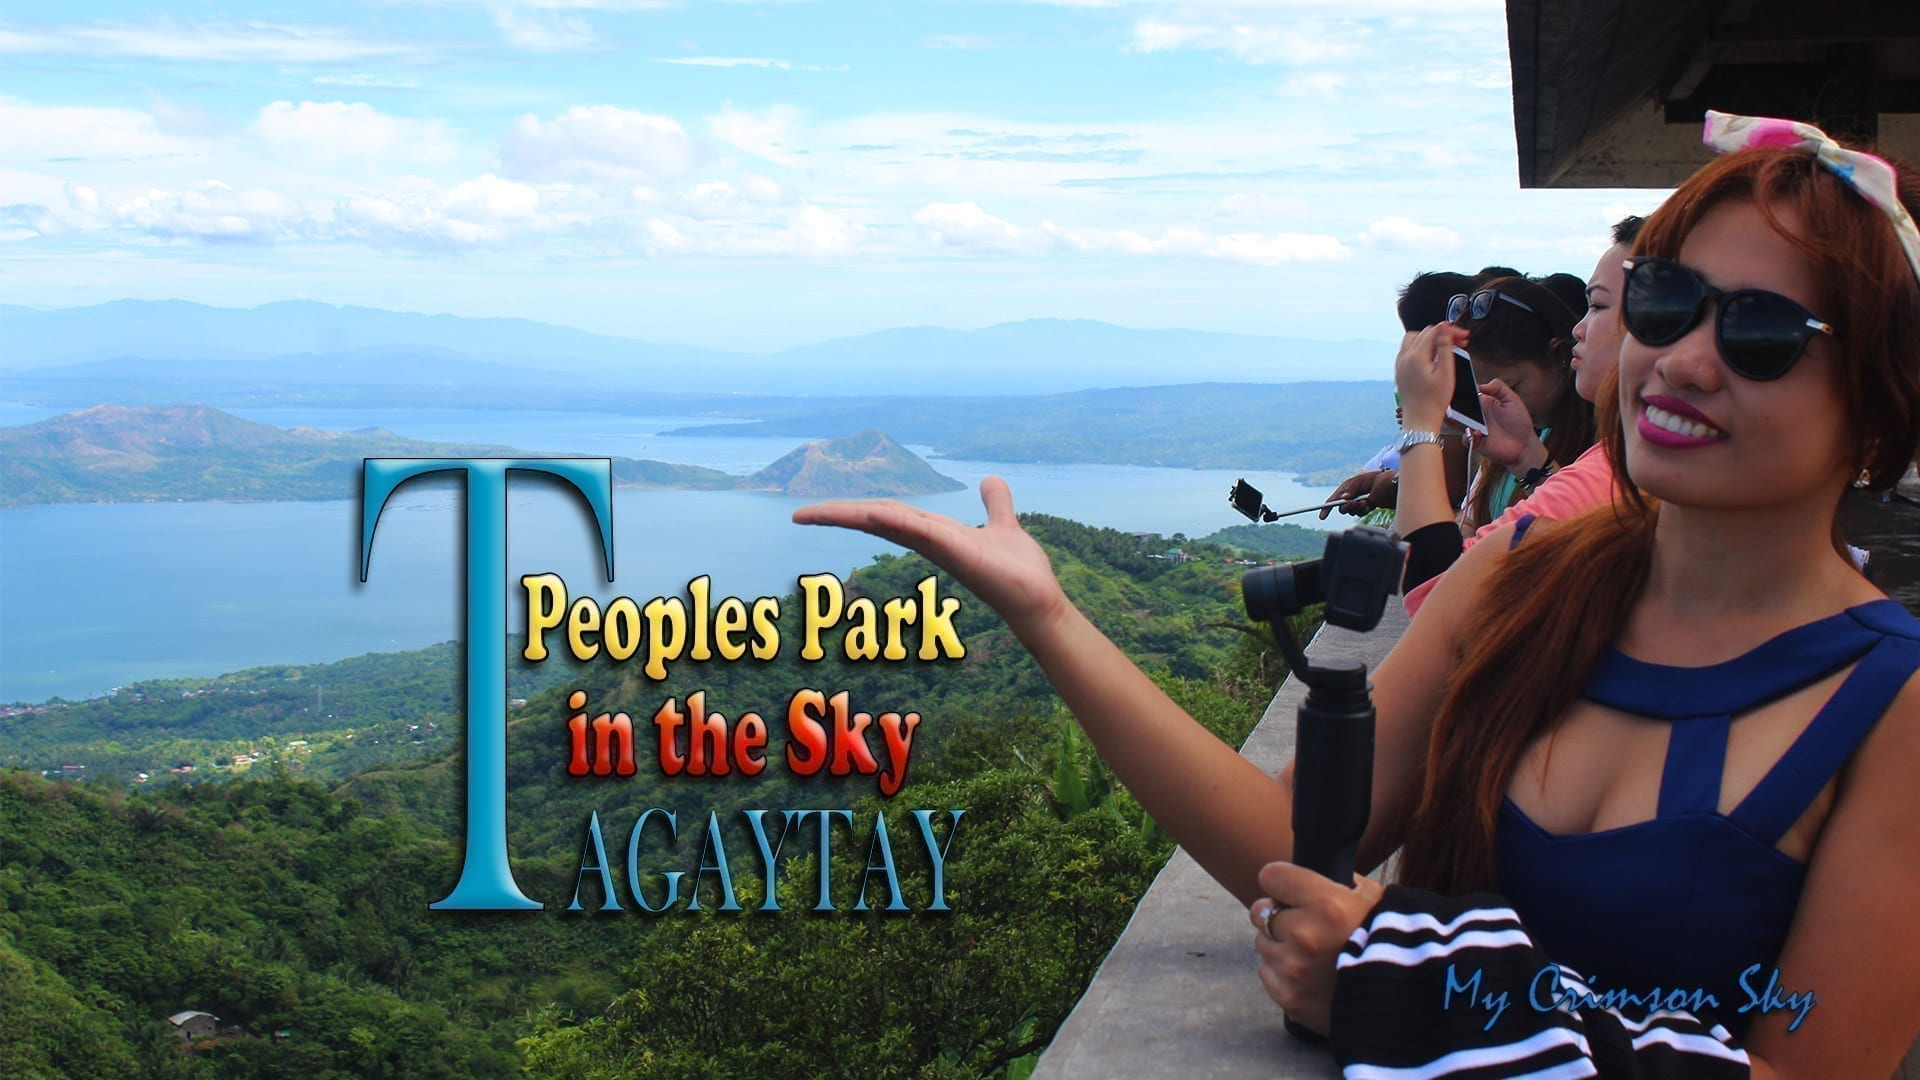 Peoples park Tagaytay